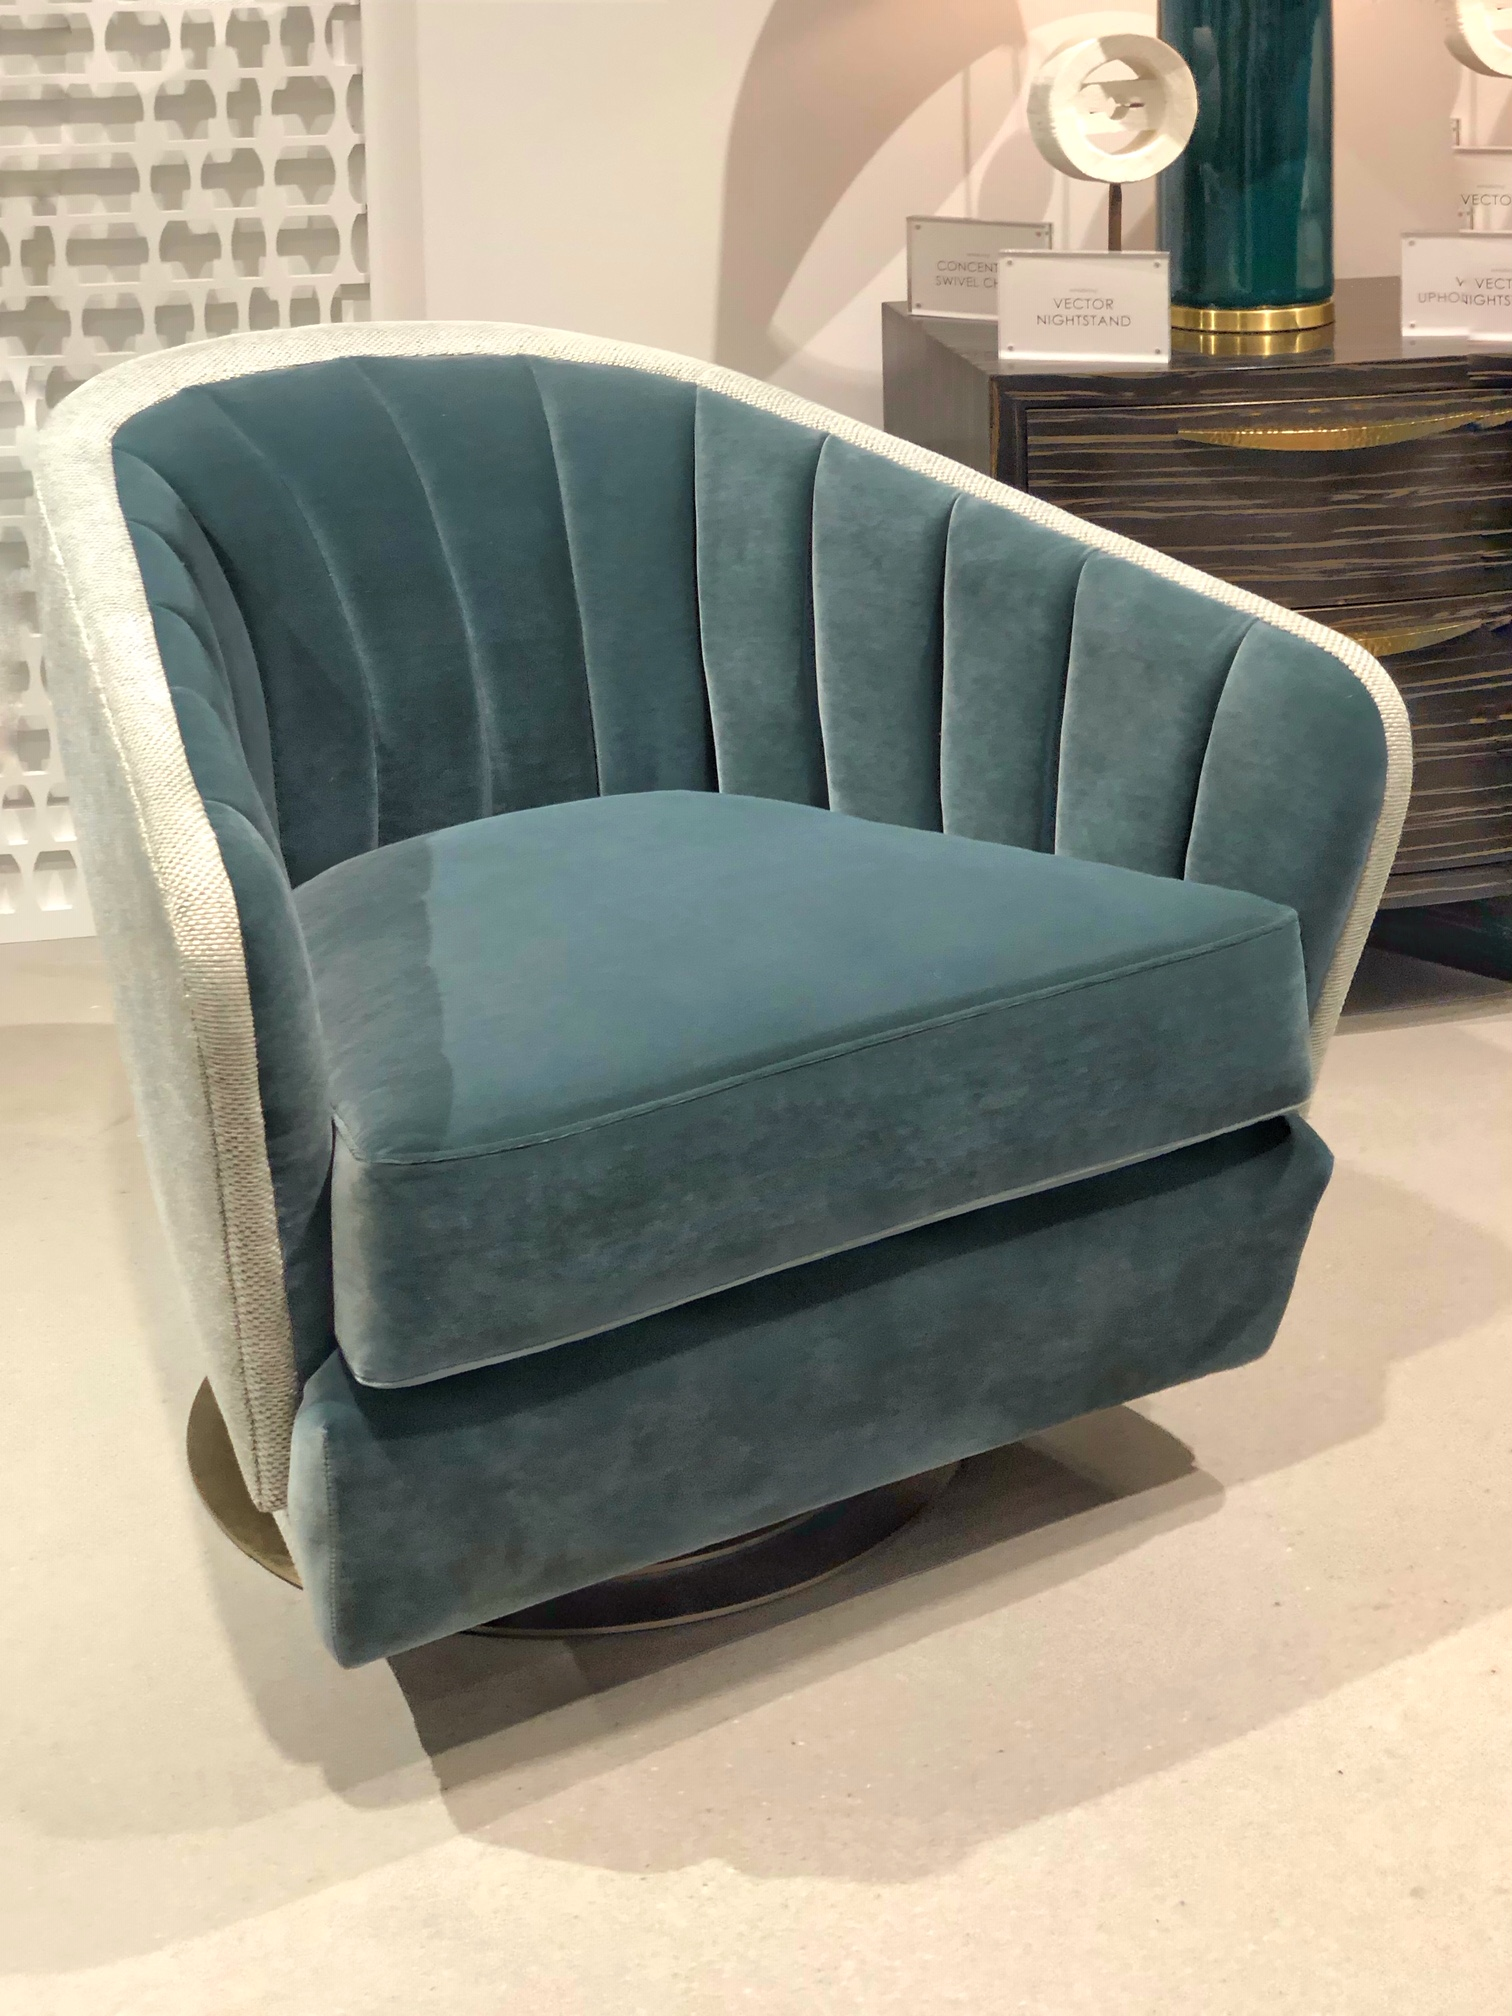 teal colored channel back swivel chair